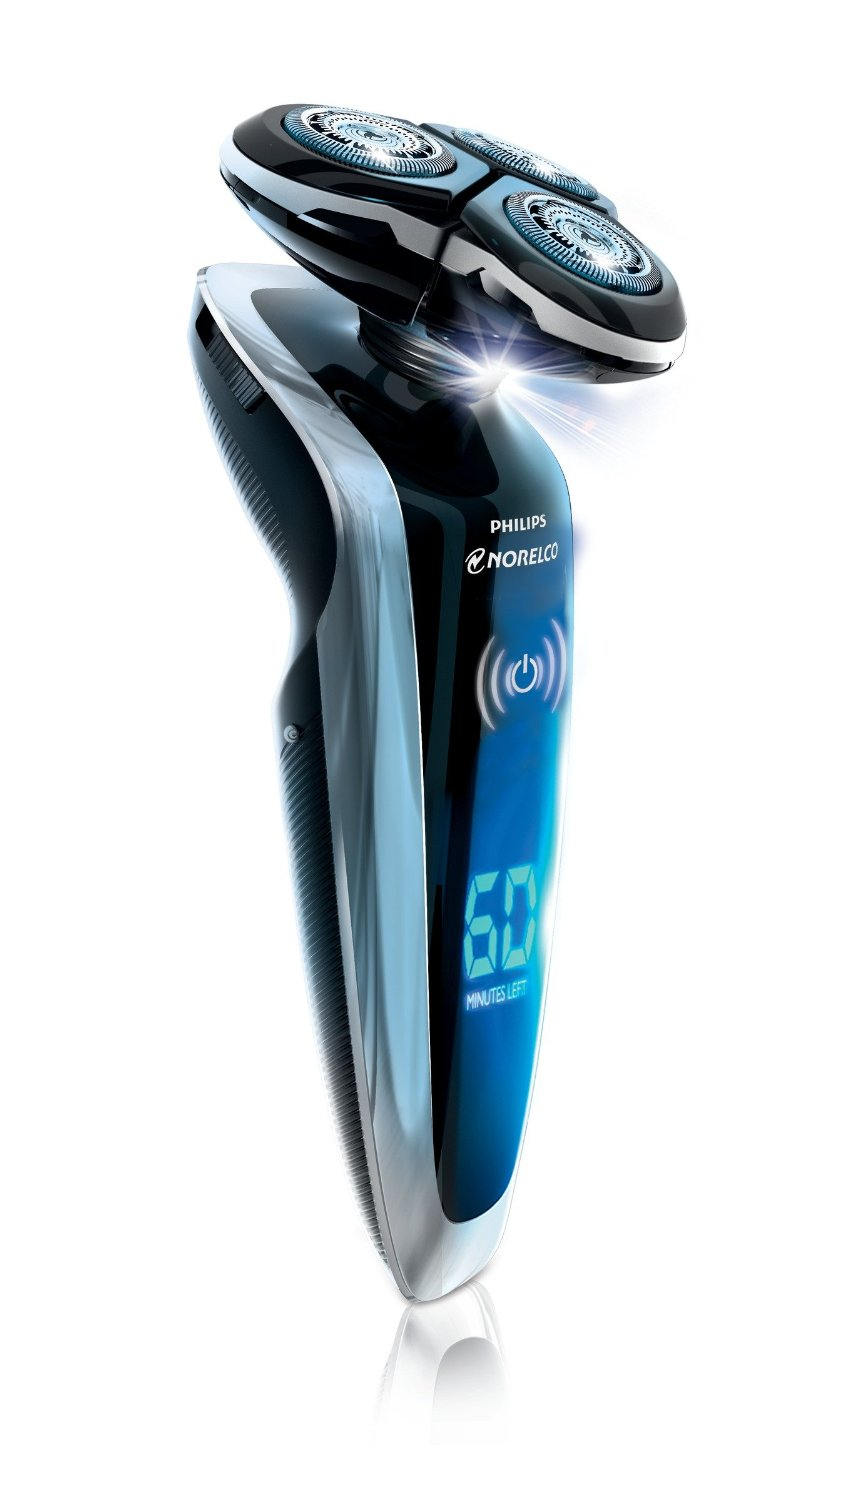 Philips Norelco Shaver is my Husband's New Best Friend!